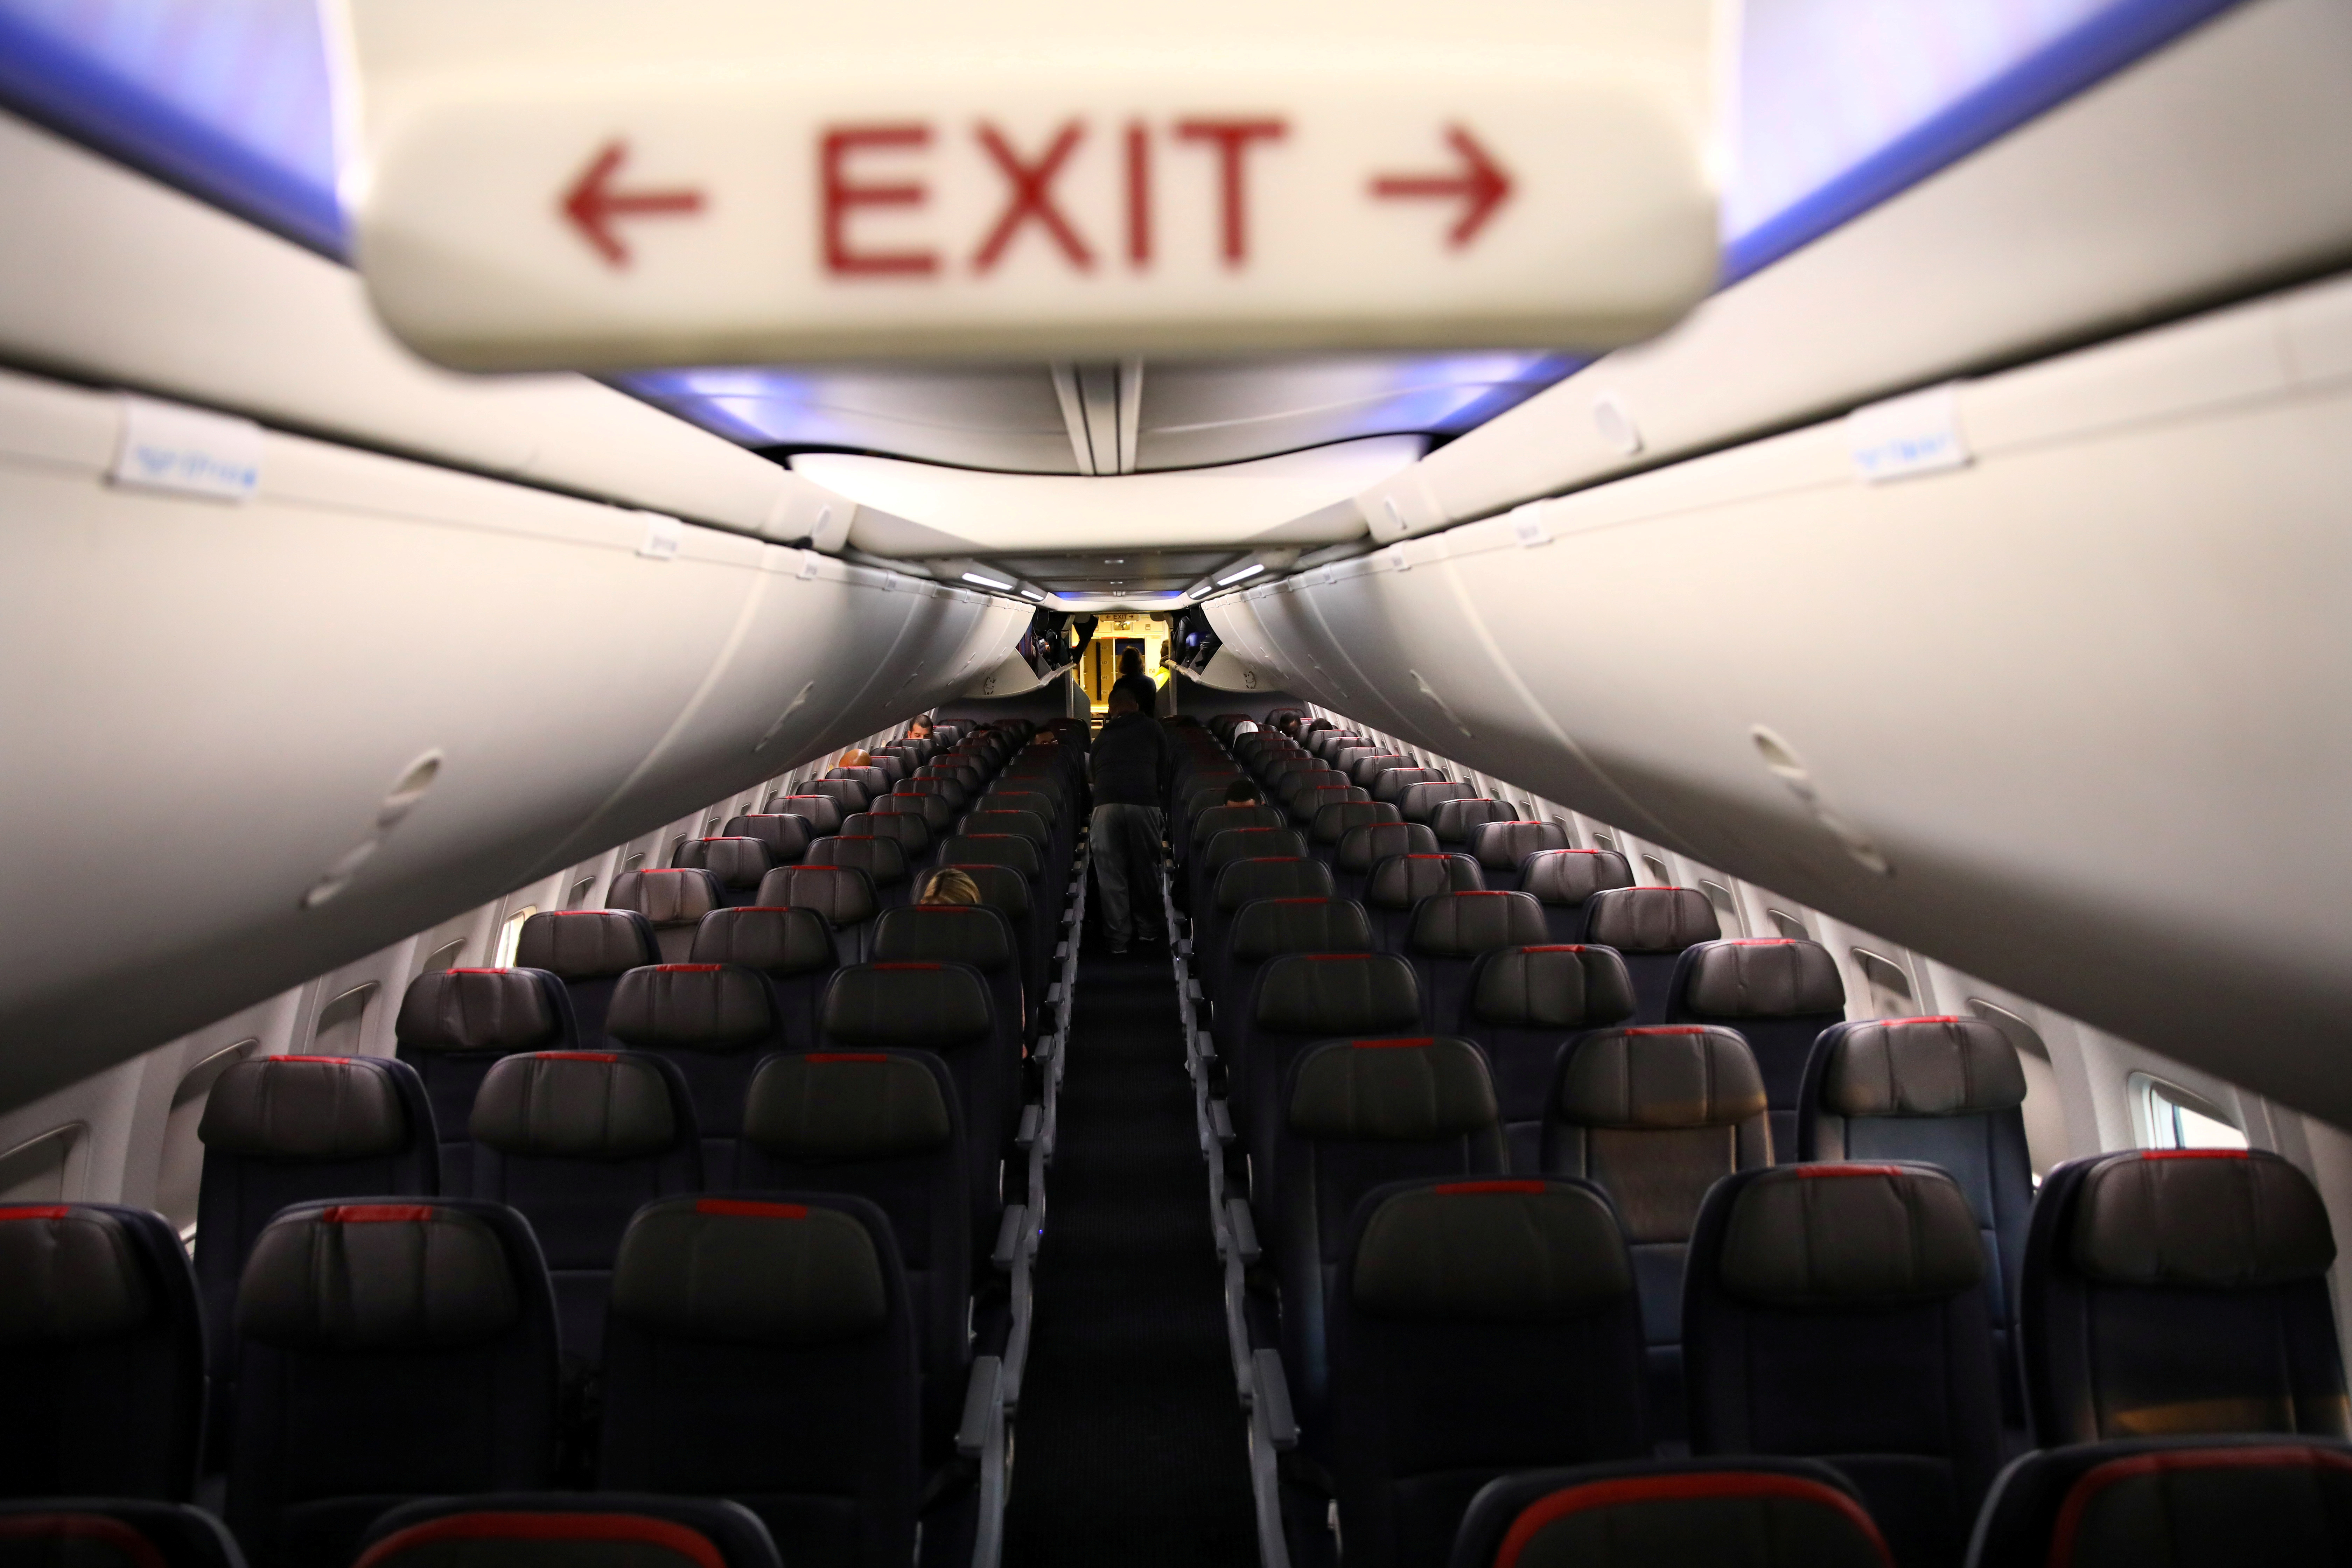 Rows of empty seats of an American Airline flight are seen, as coronavirus disease (COVID-19) disruption continues across the global industry, during a flight between Washington D.C. and Miami, in Washington, U.S., March 18, 2020. REUTERS/Carlos Barria/File Photo